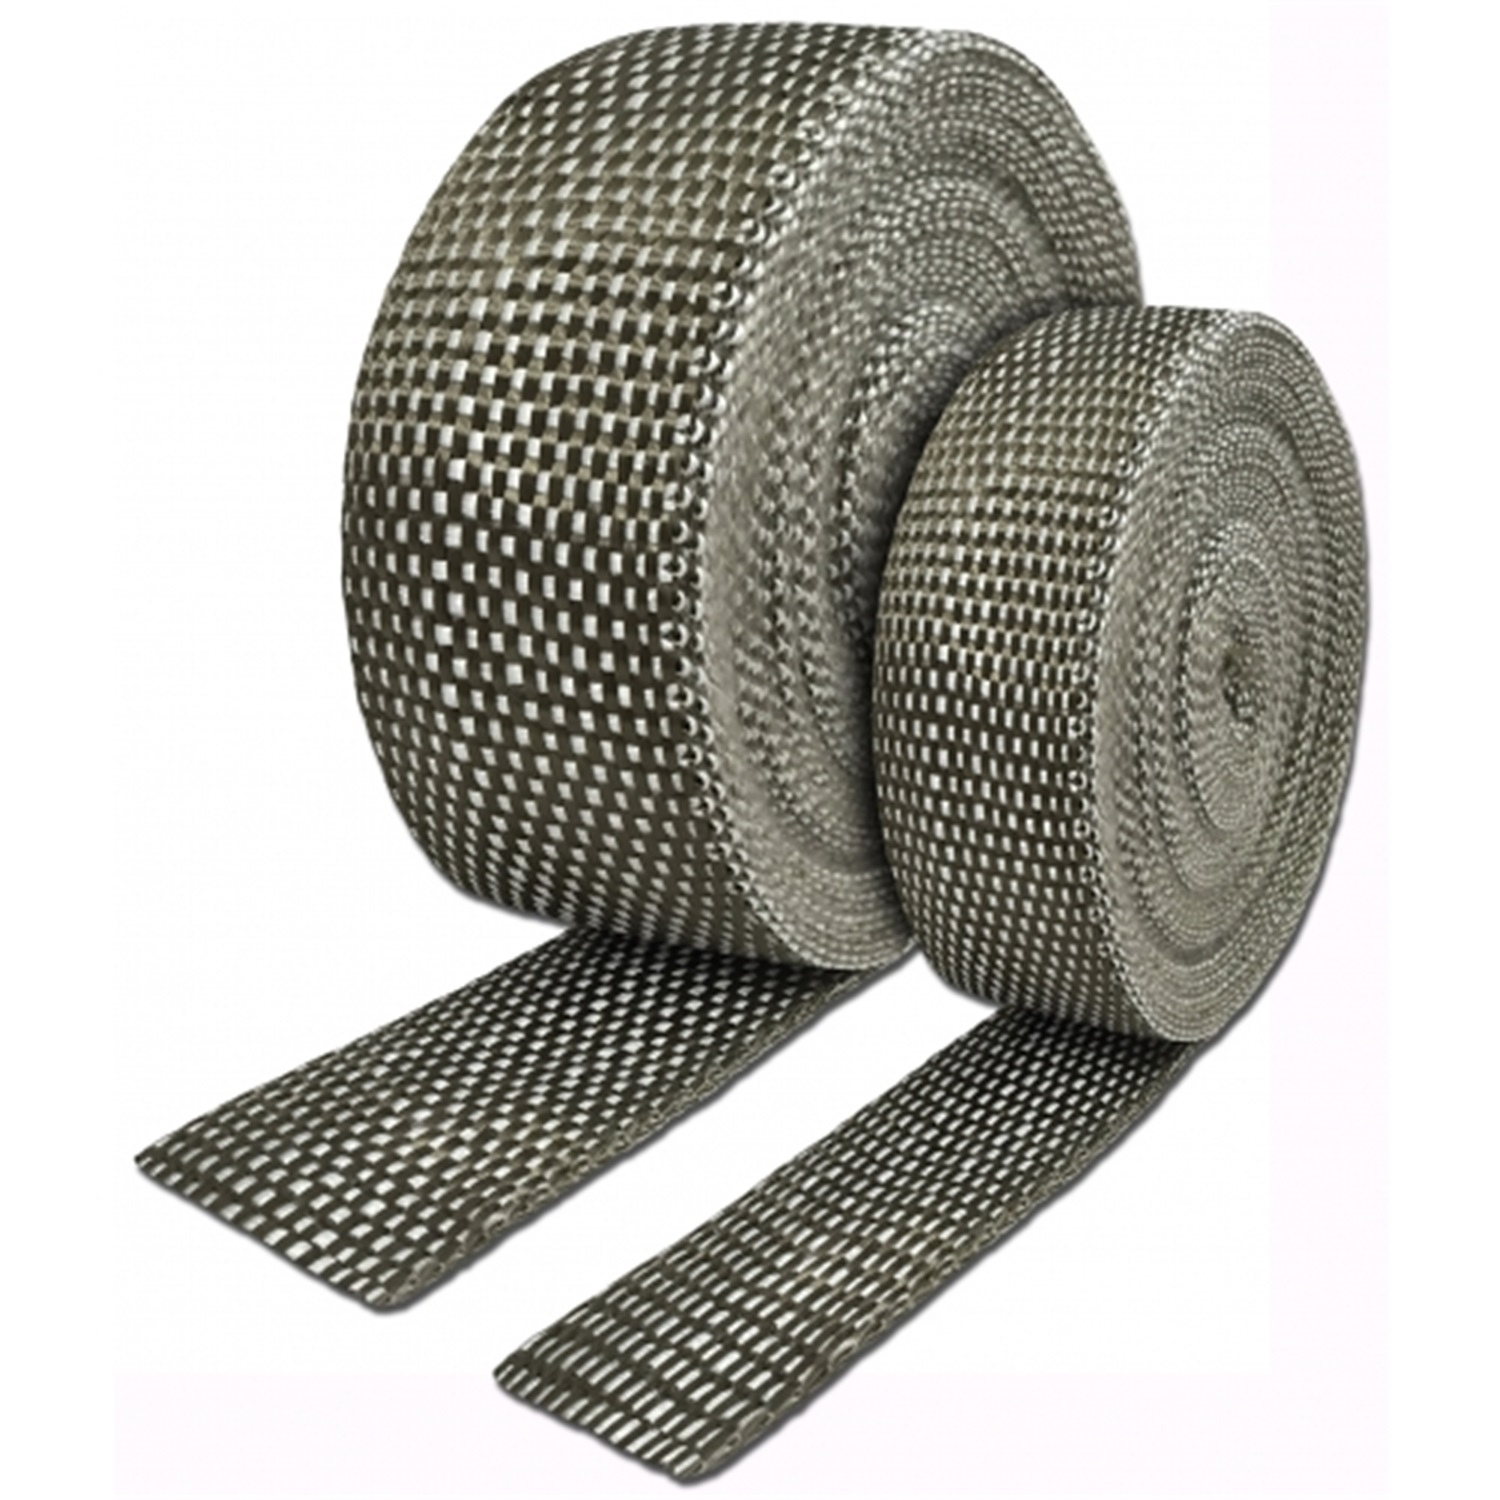 Thermo Tec 11062 Exhaust Insulating Wrap